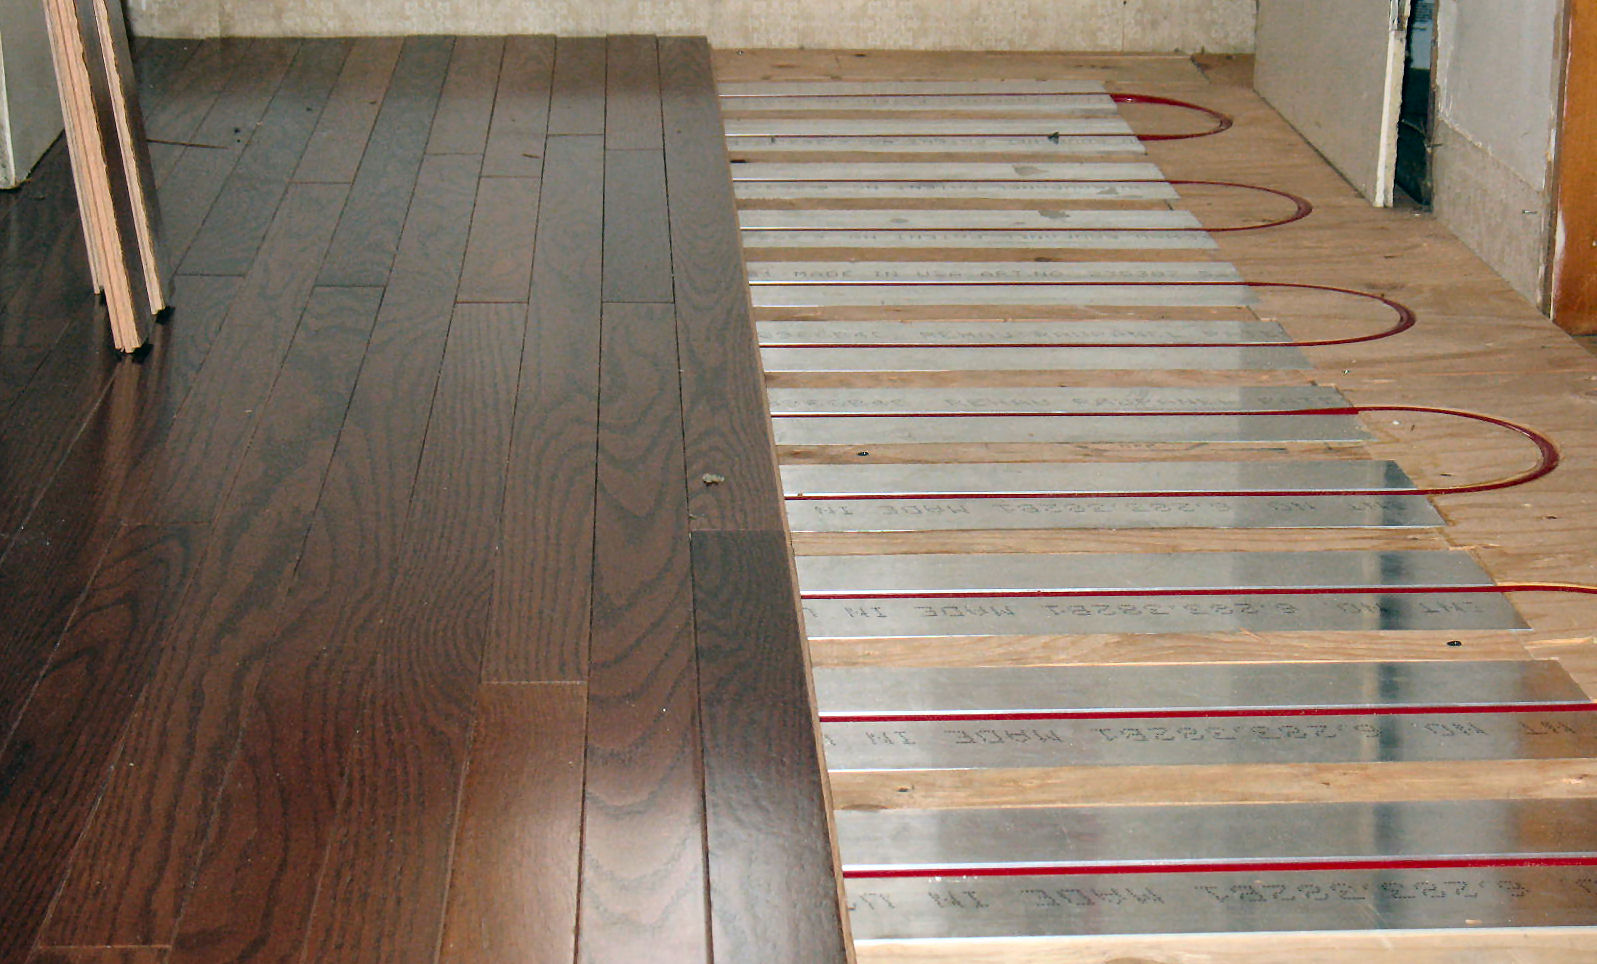 Janes Radiant Install Radiant Floor Heating Yourself - How to do radiant floor heating